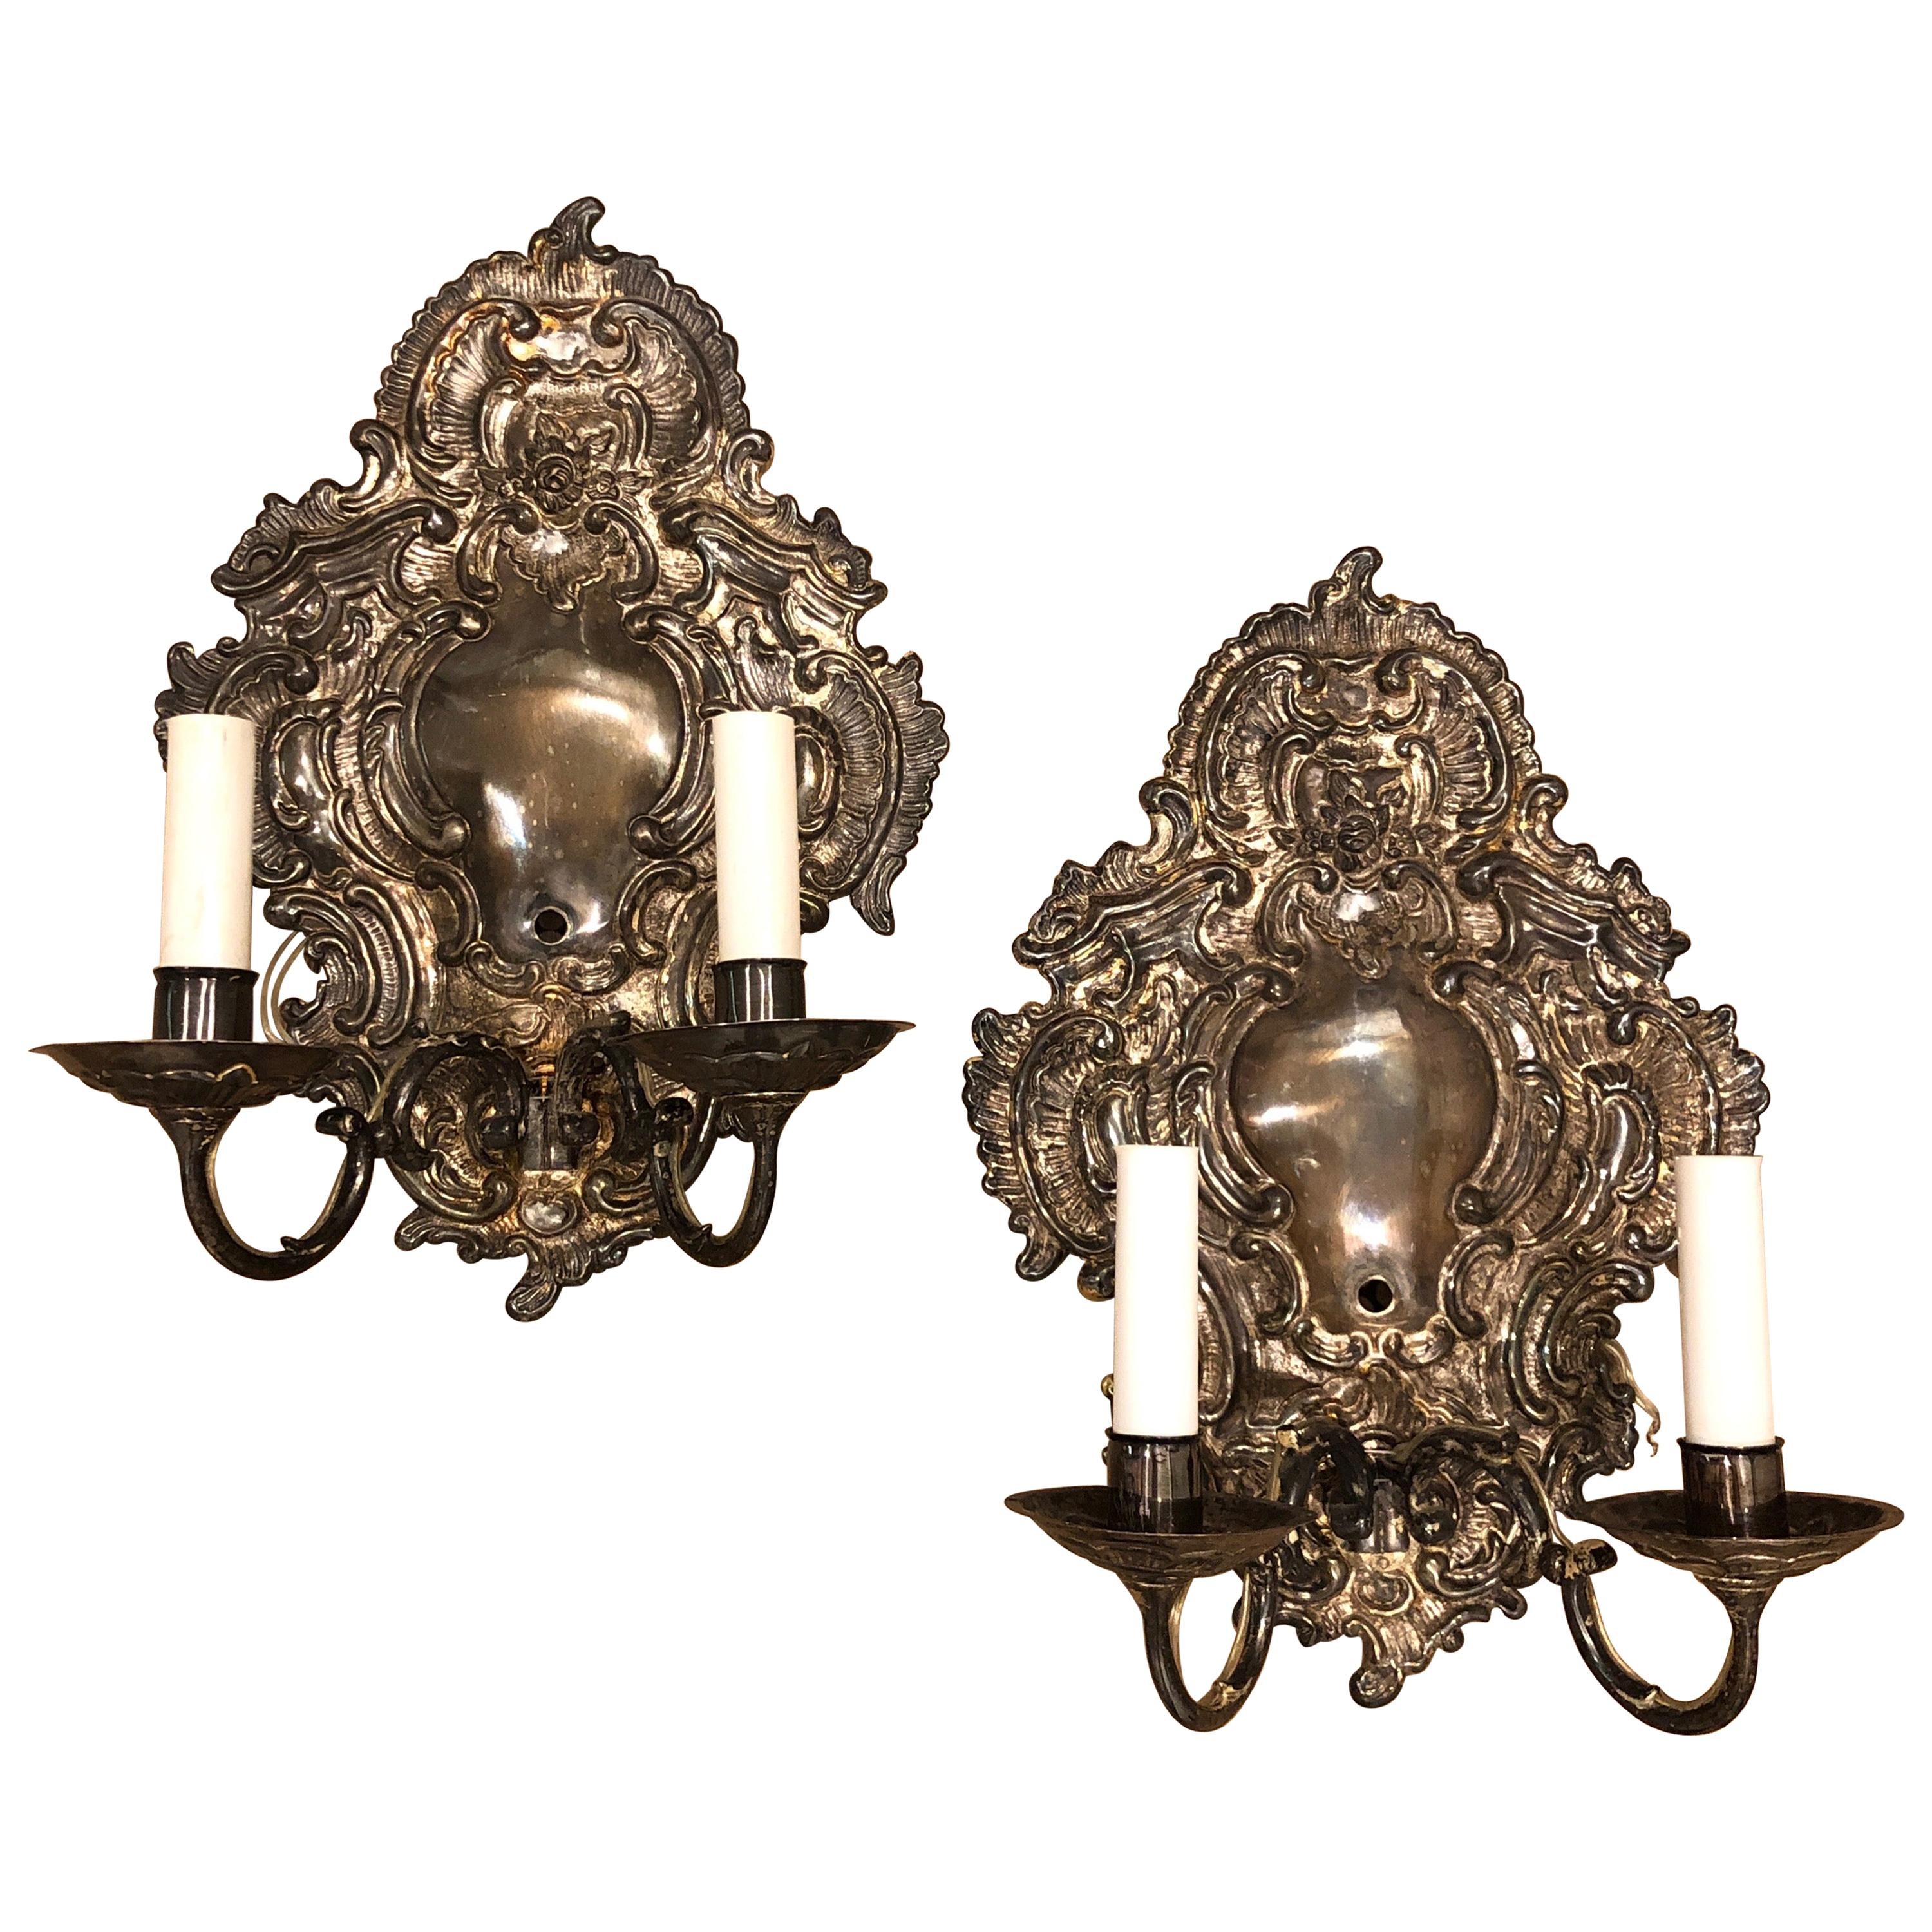 Pair of Silver Paul Ferrante Wall Sconces, Double Arm George II Style